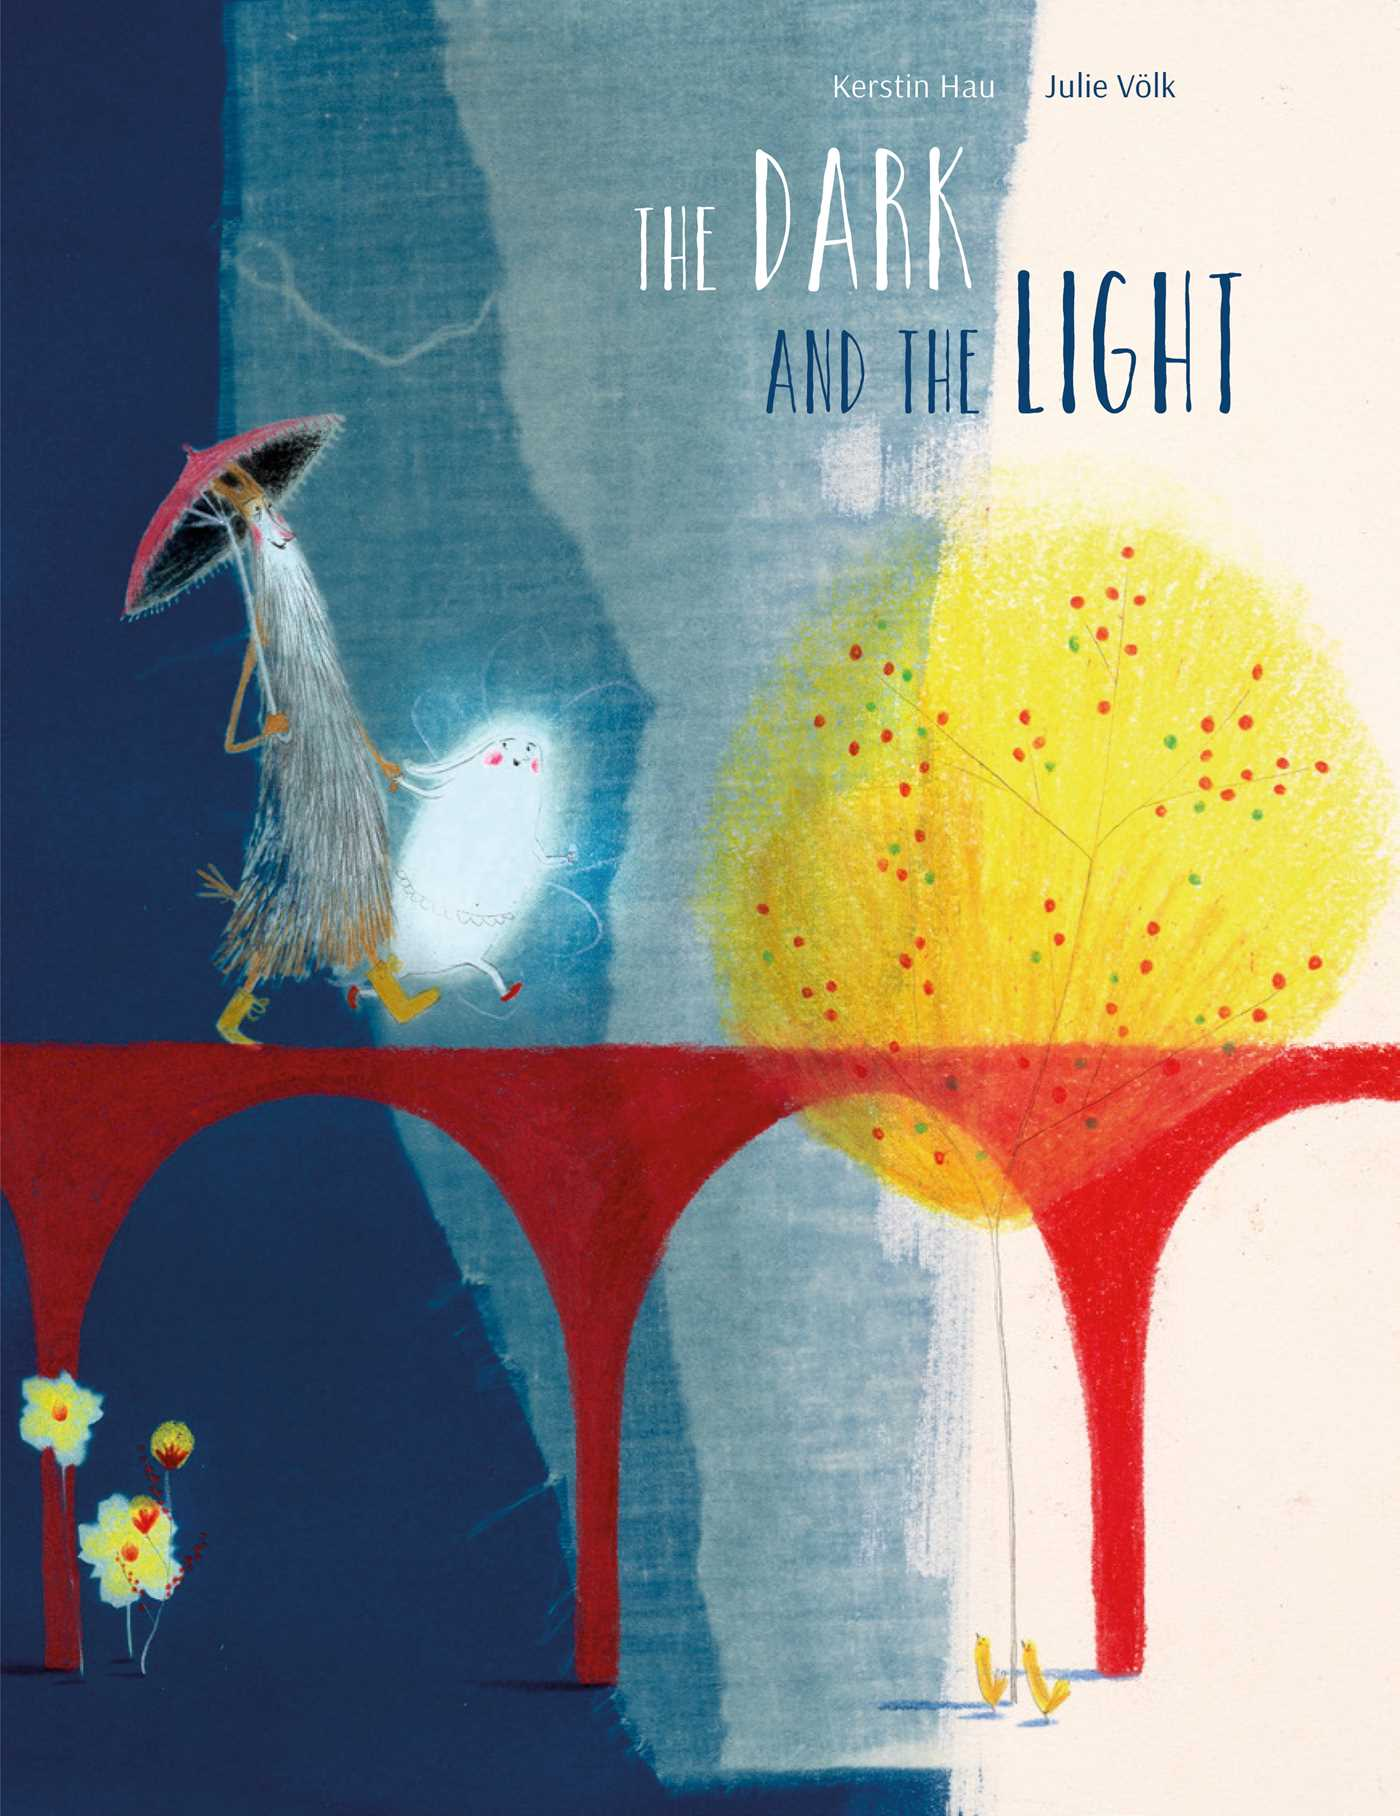 Cover of The Dark and the Light, depicting a tall grey figure wearing a red hat walking besides a smaller, ghost-like white figure on a red bridge with a yellow tree in the background.